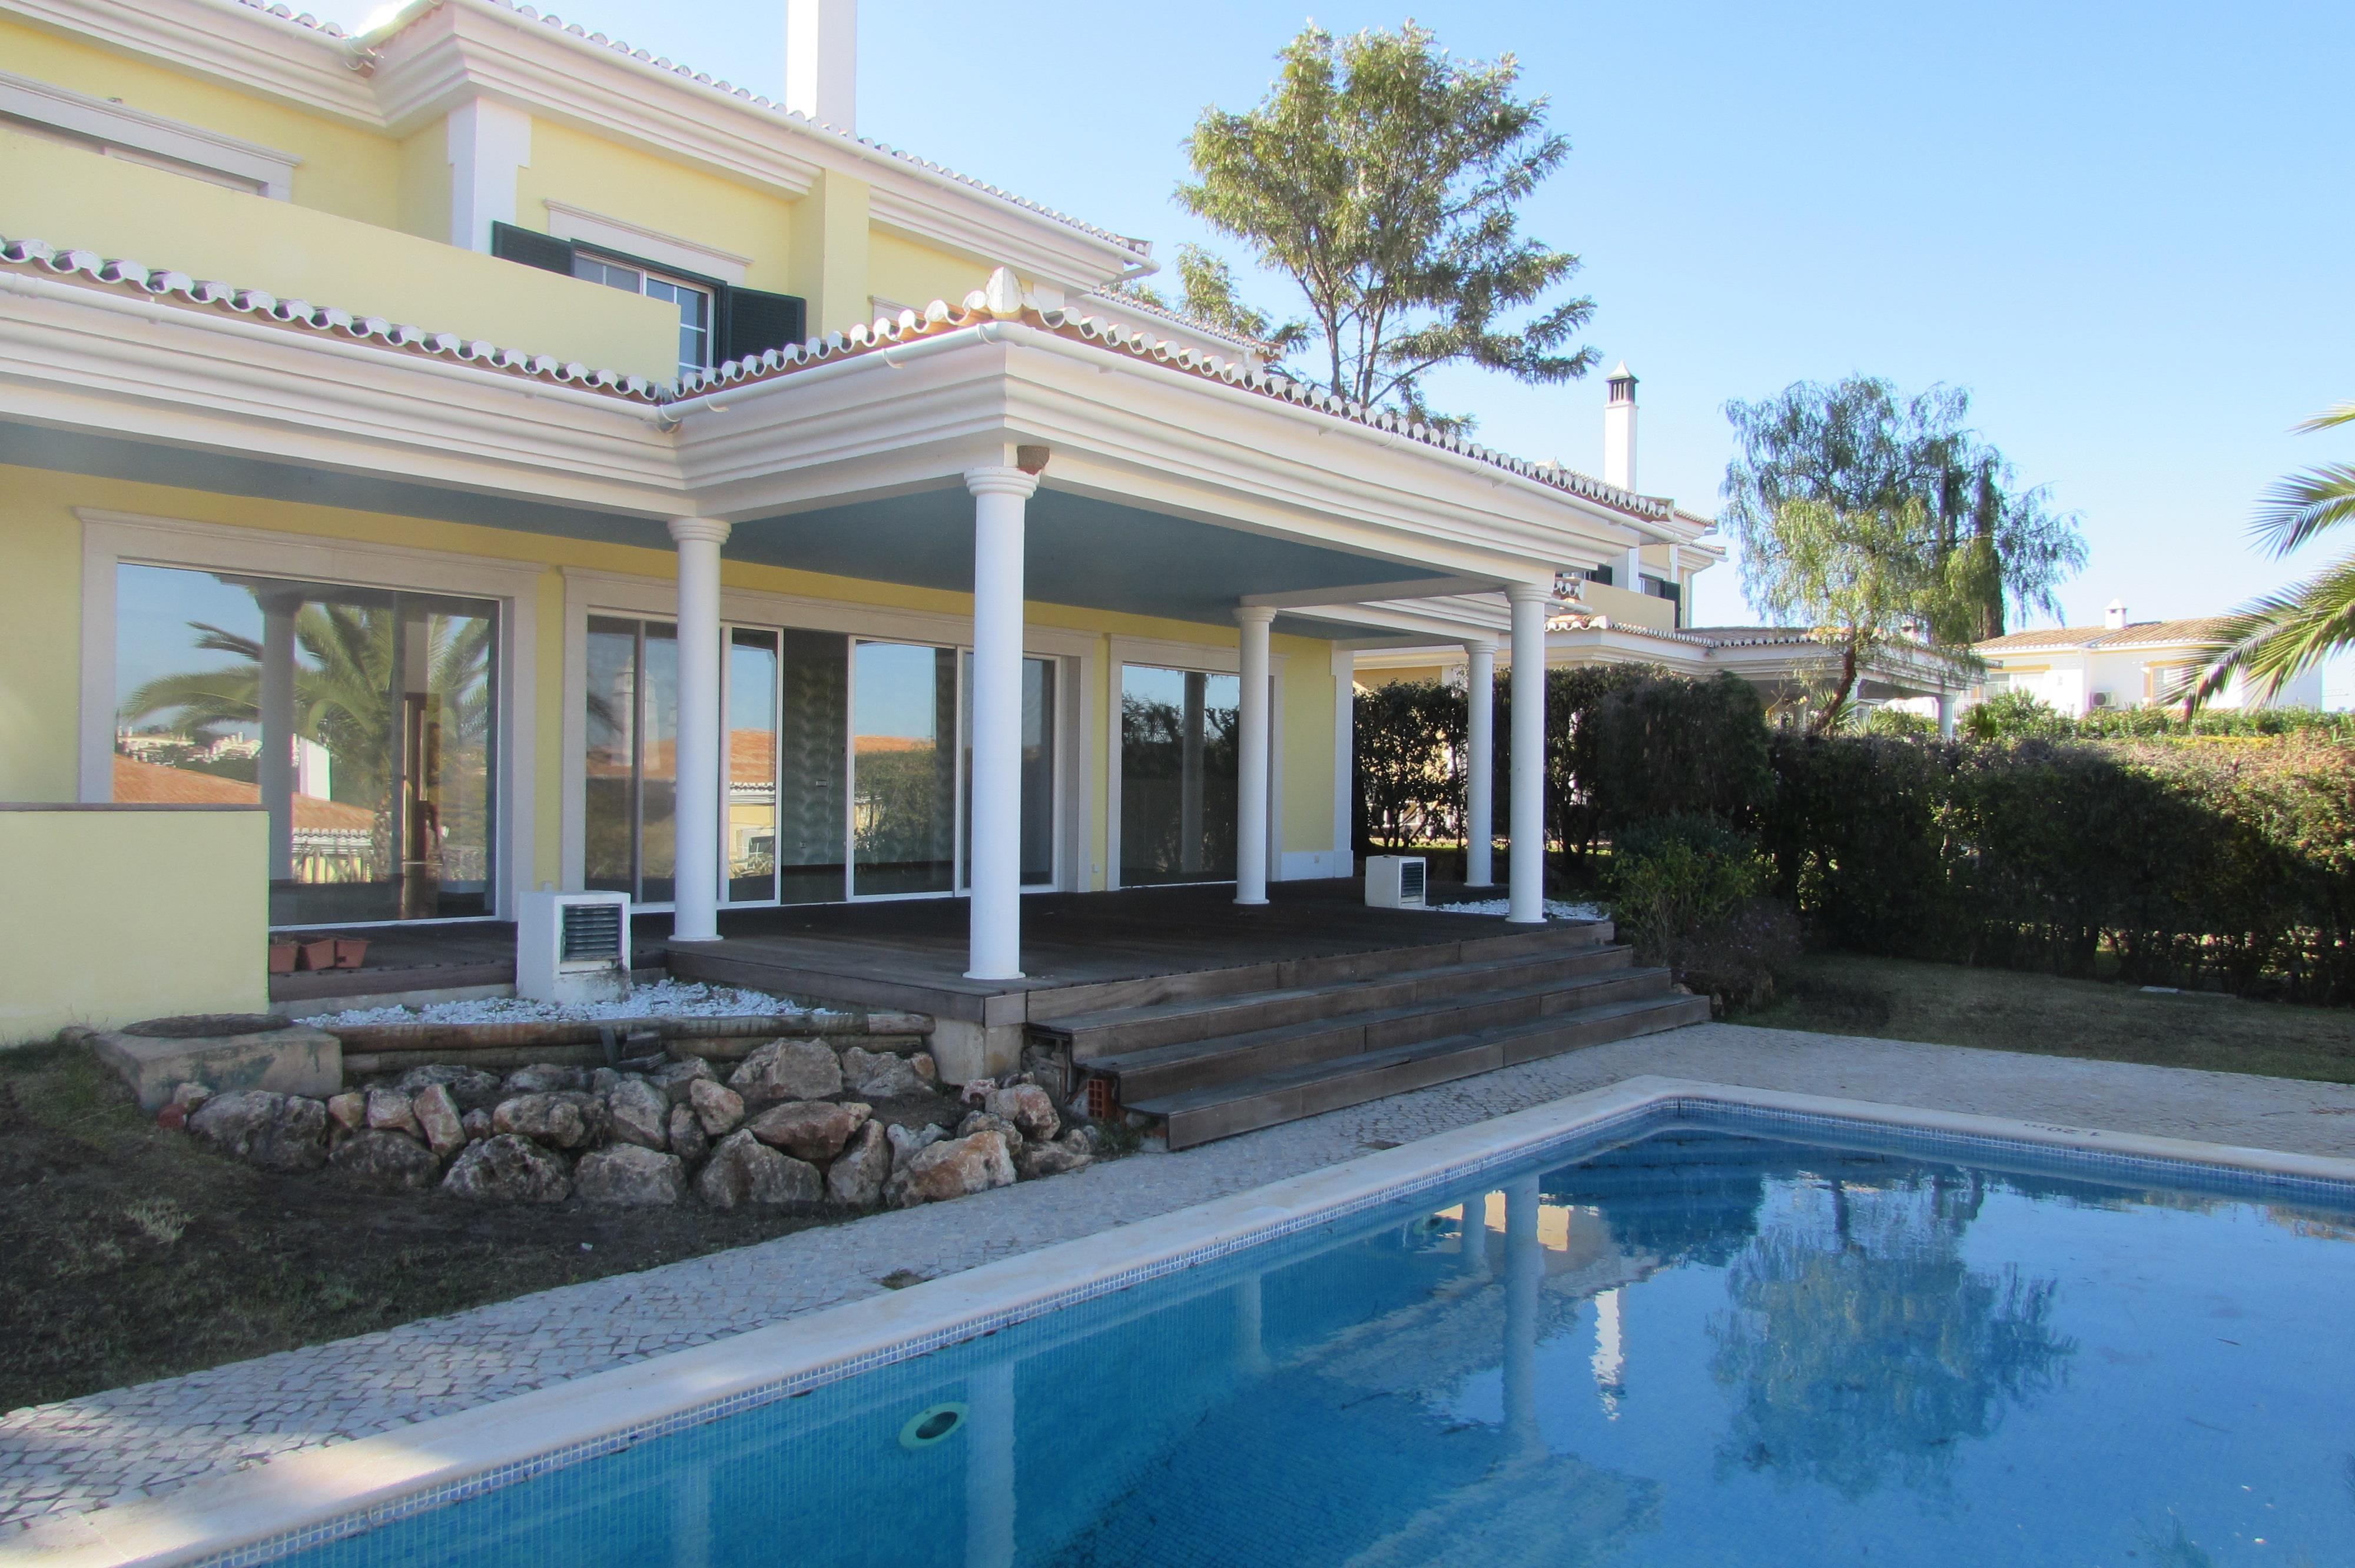 Single Family Home for Sale at Detached house, 4 bedrooms, for Sale Loule, Algarve, 8135-106 Portugal